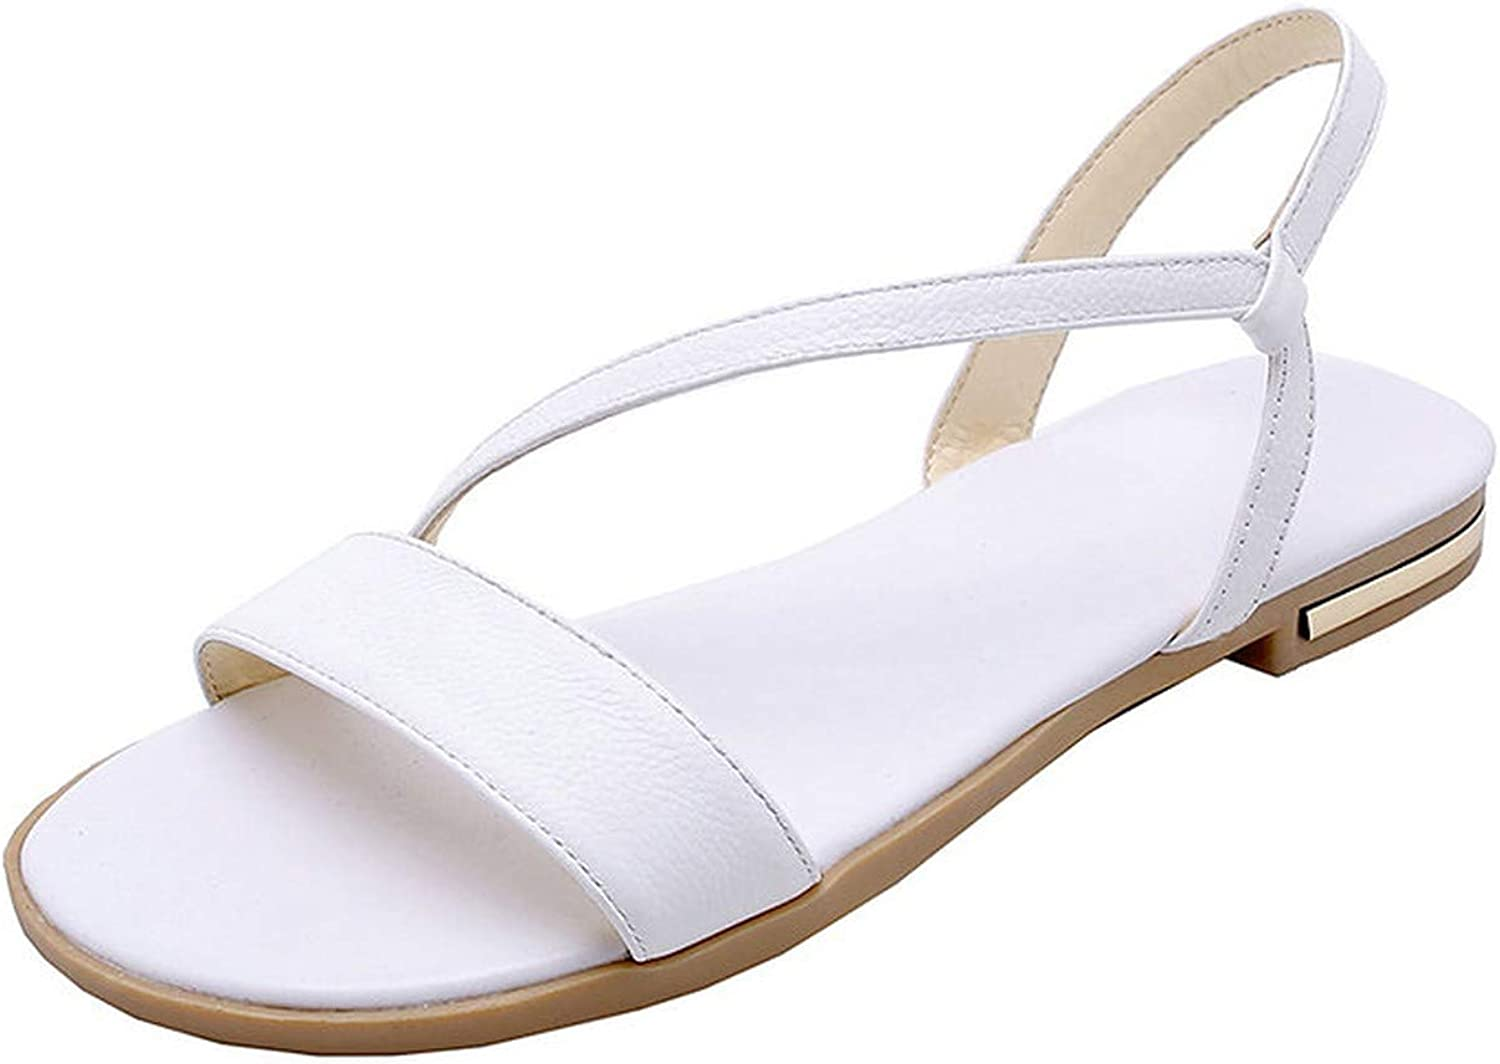 Women Sandals Flat Heel Champagne Cow Round Open-Toed Soft-Soled Anti-Skid shoes